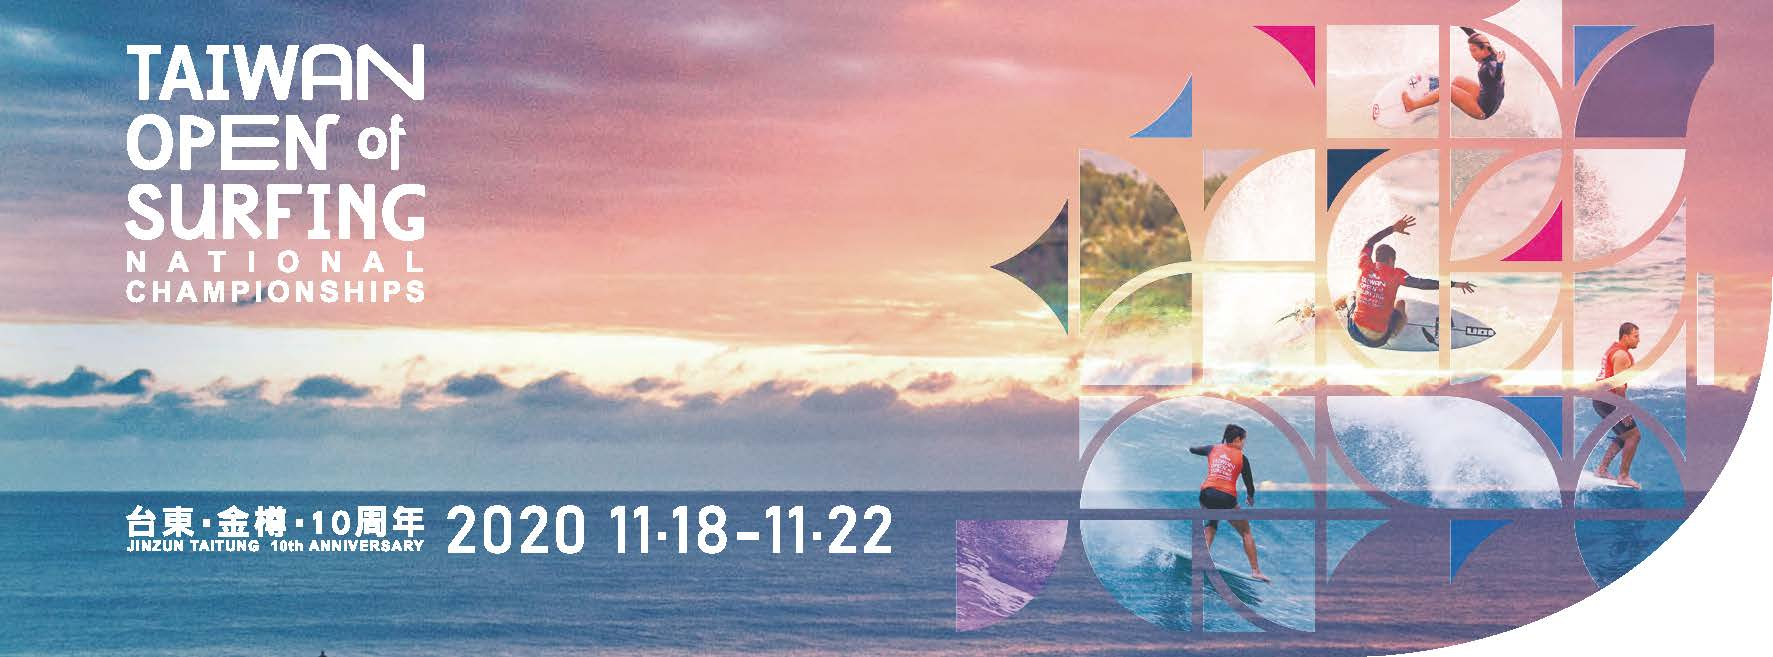 Taiwan Open of Surfing Debuts in Taitung on 18 November - Surfs Up